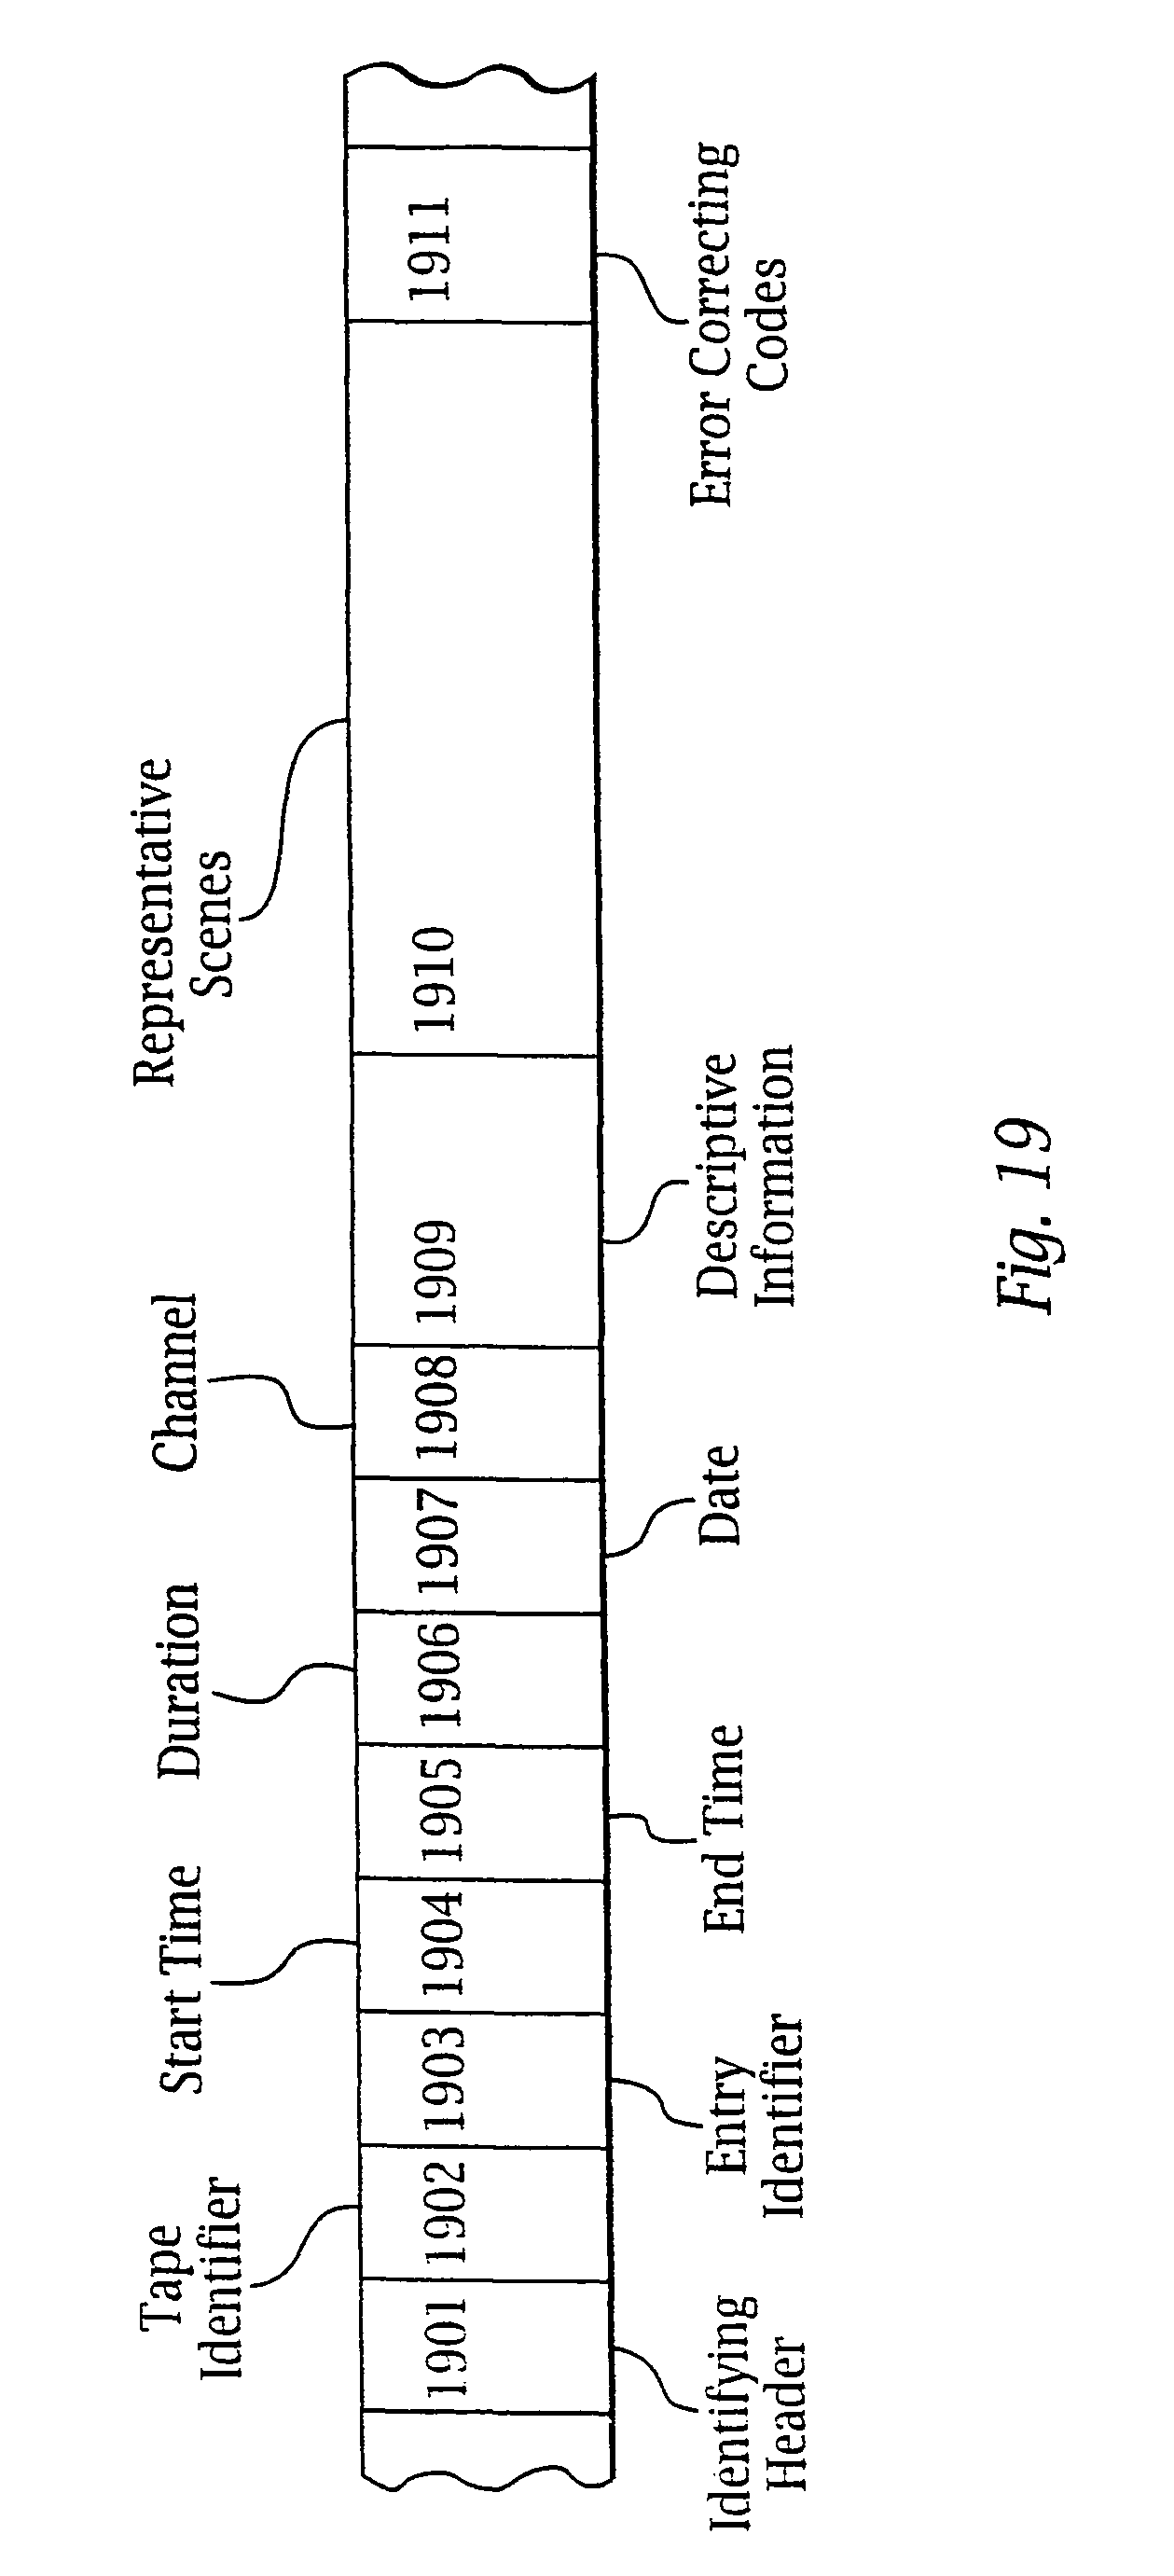 Us7966078b2 Network Media Appliance System And Method Google Patents